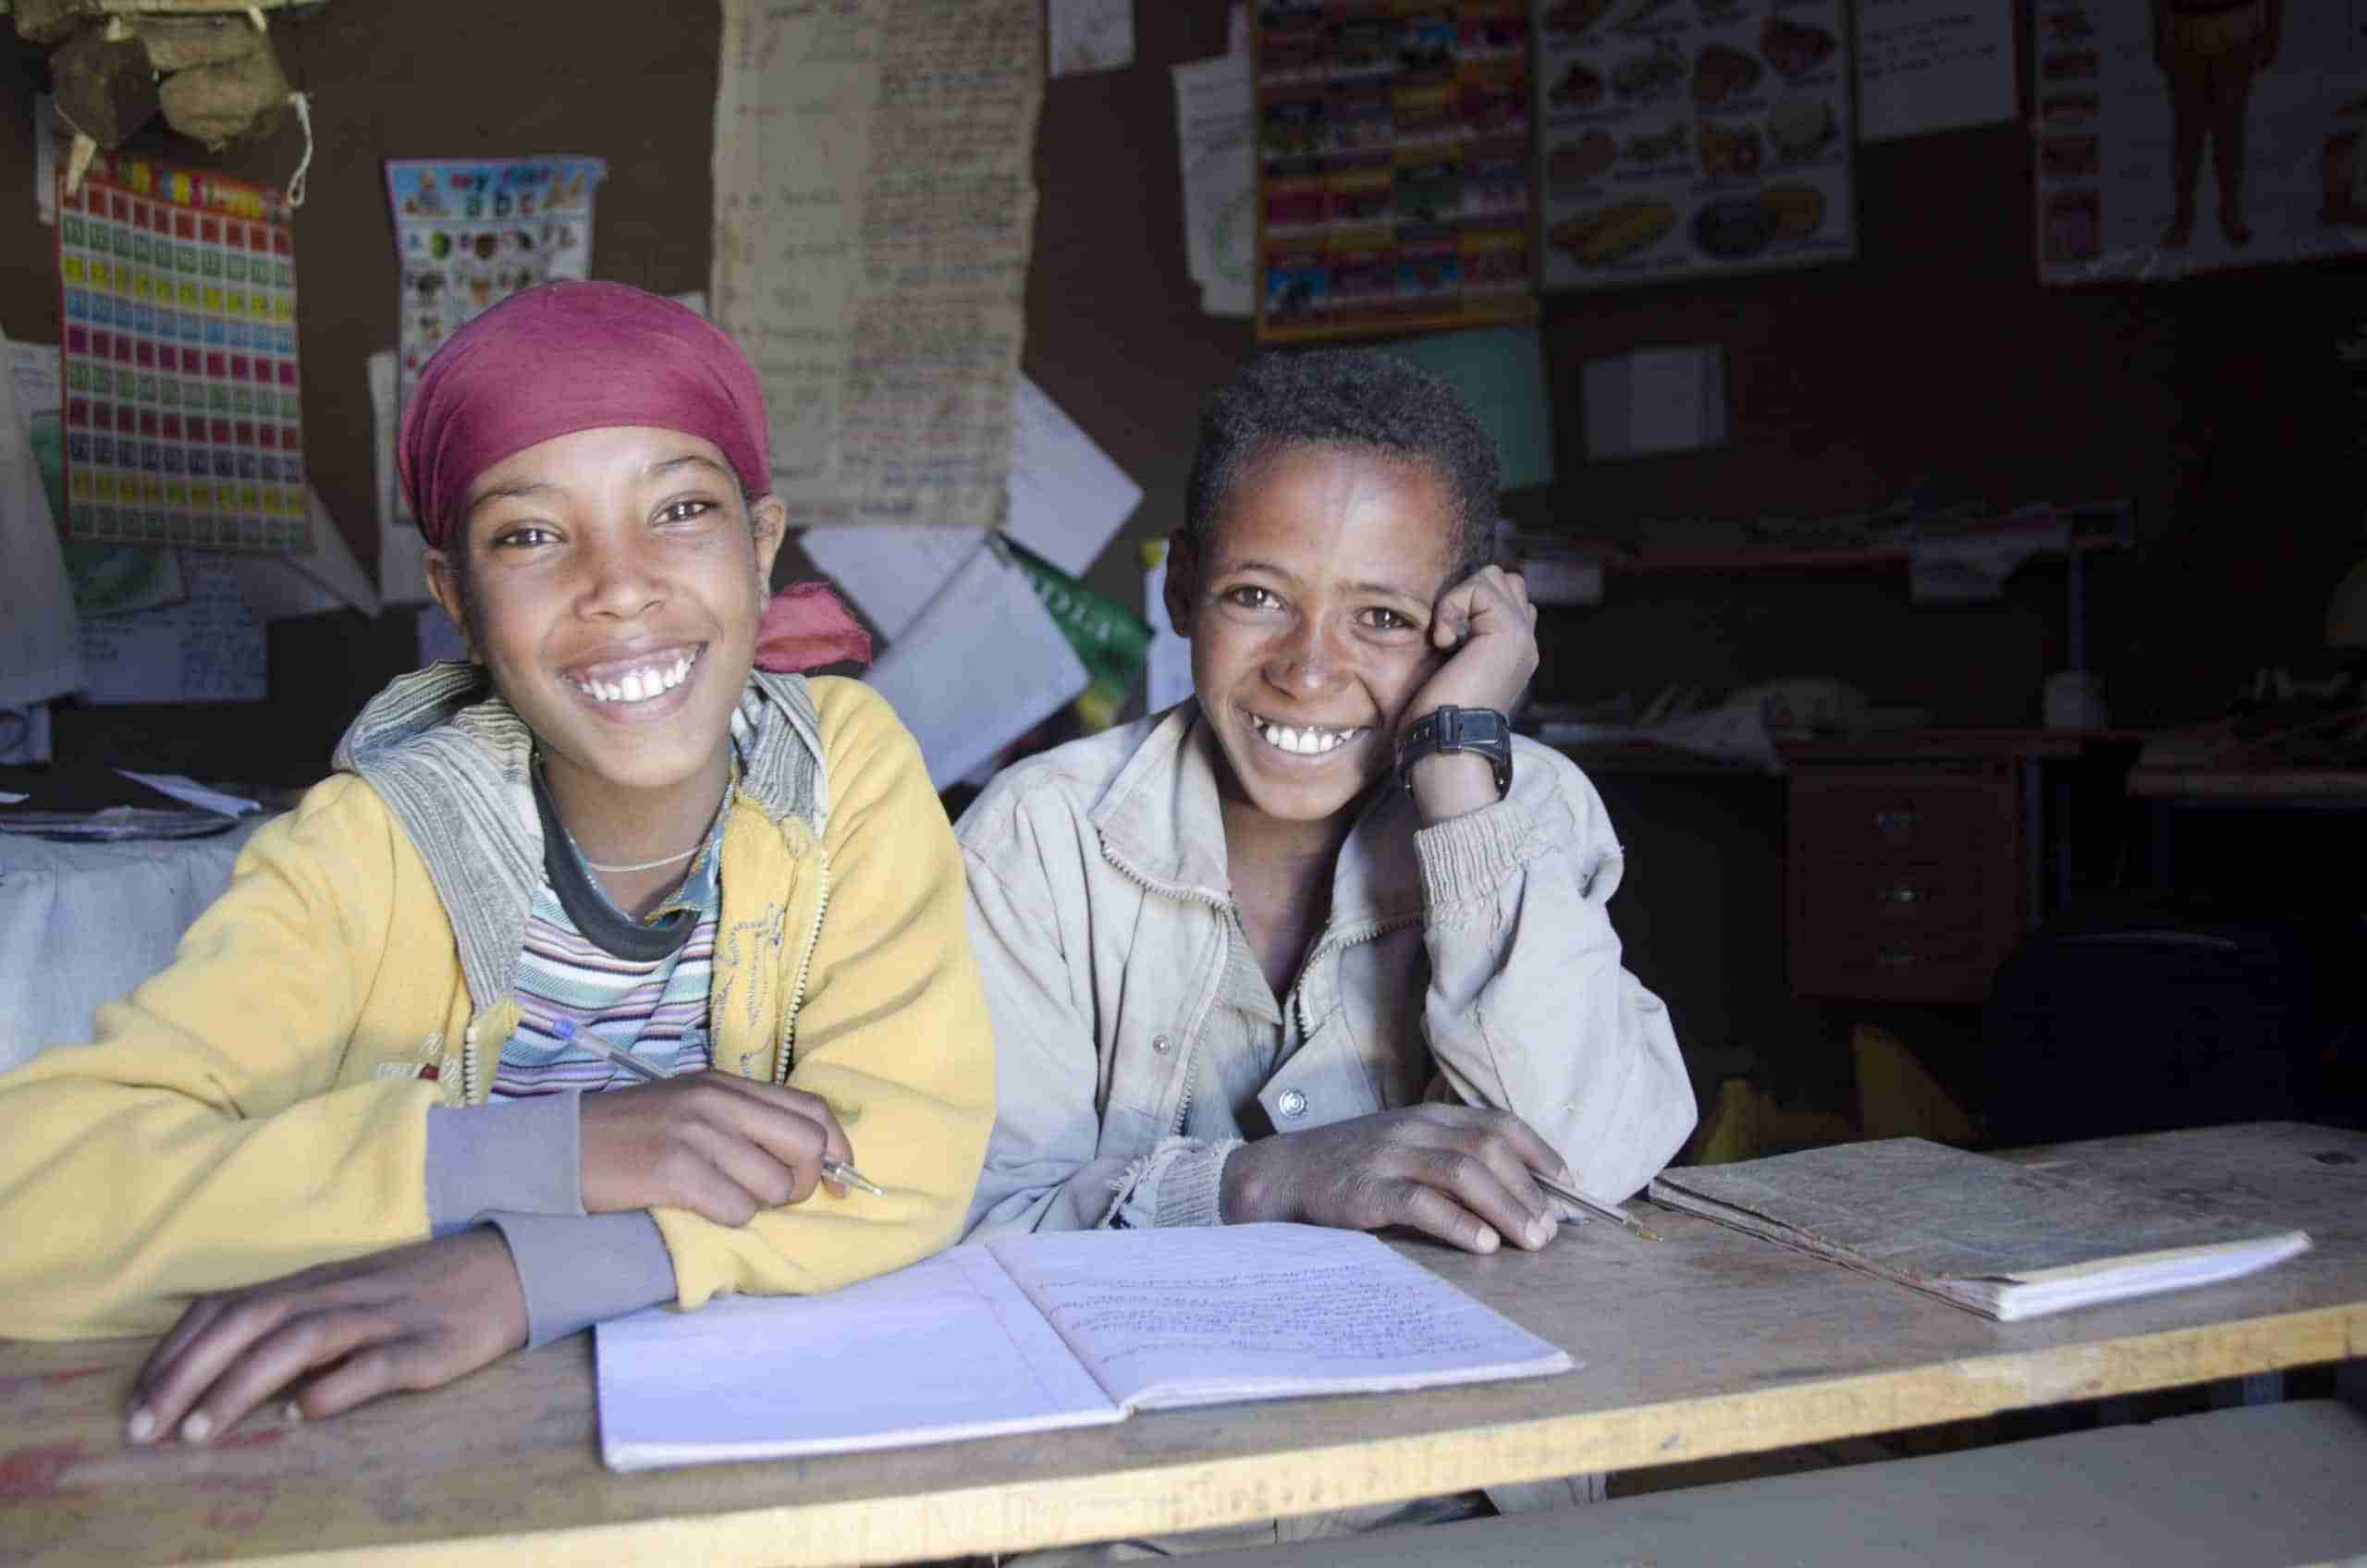 A girl and boy sit side by side with a notebook open on their desk in a classroom